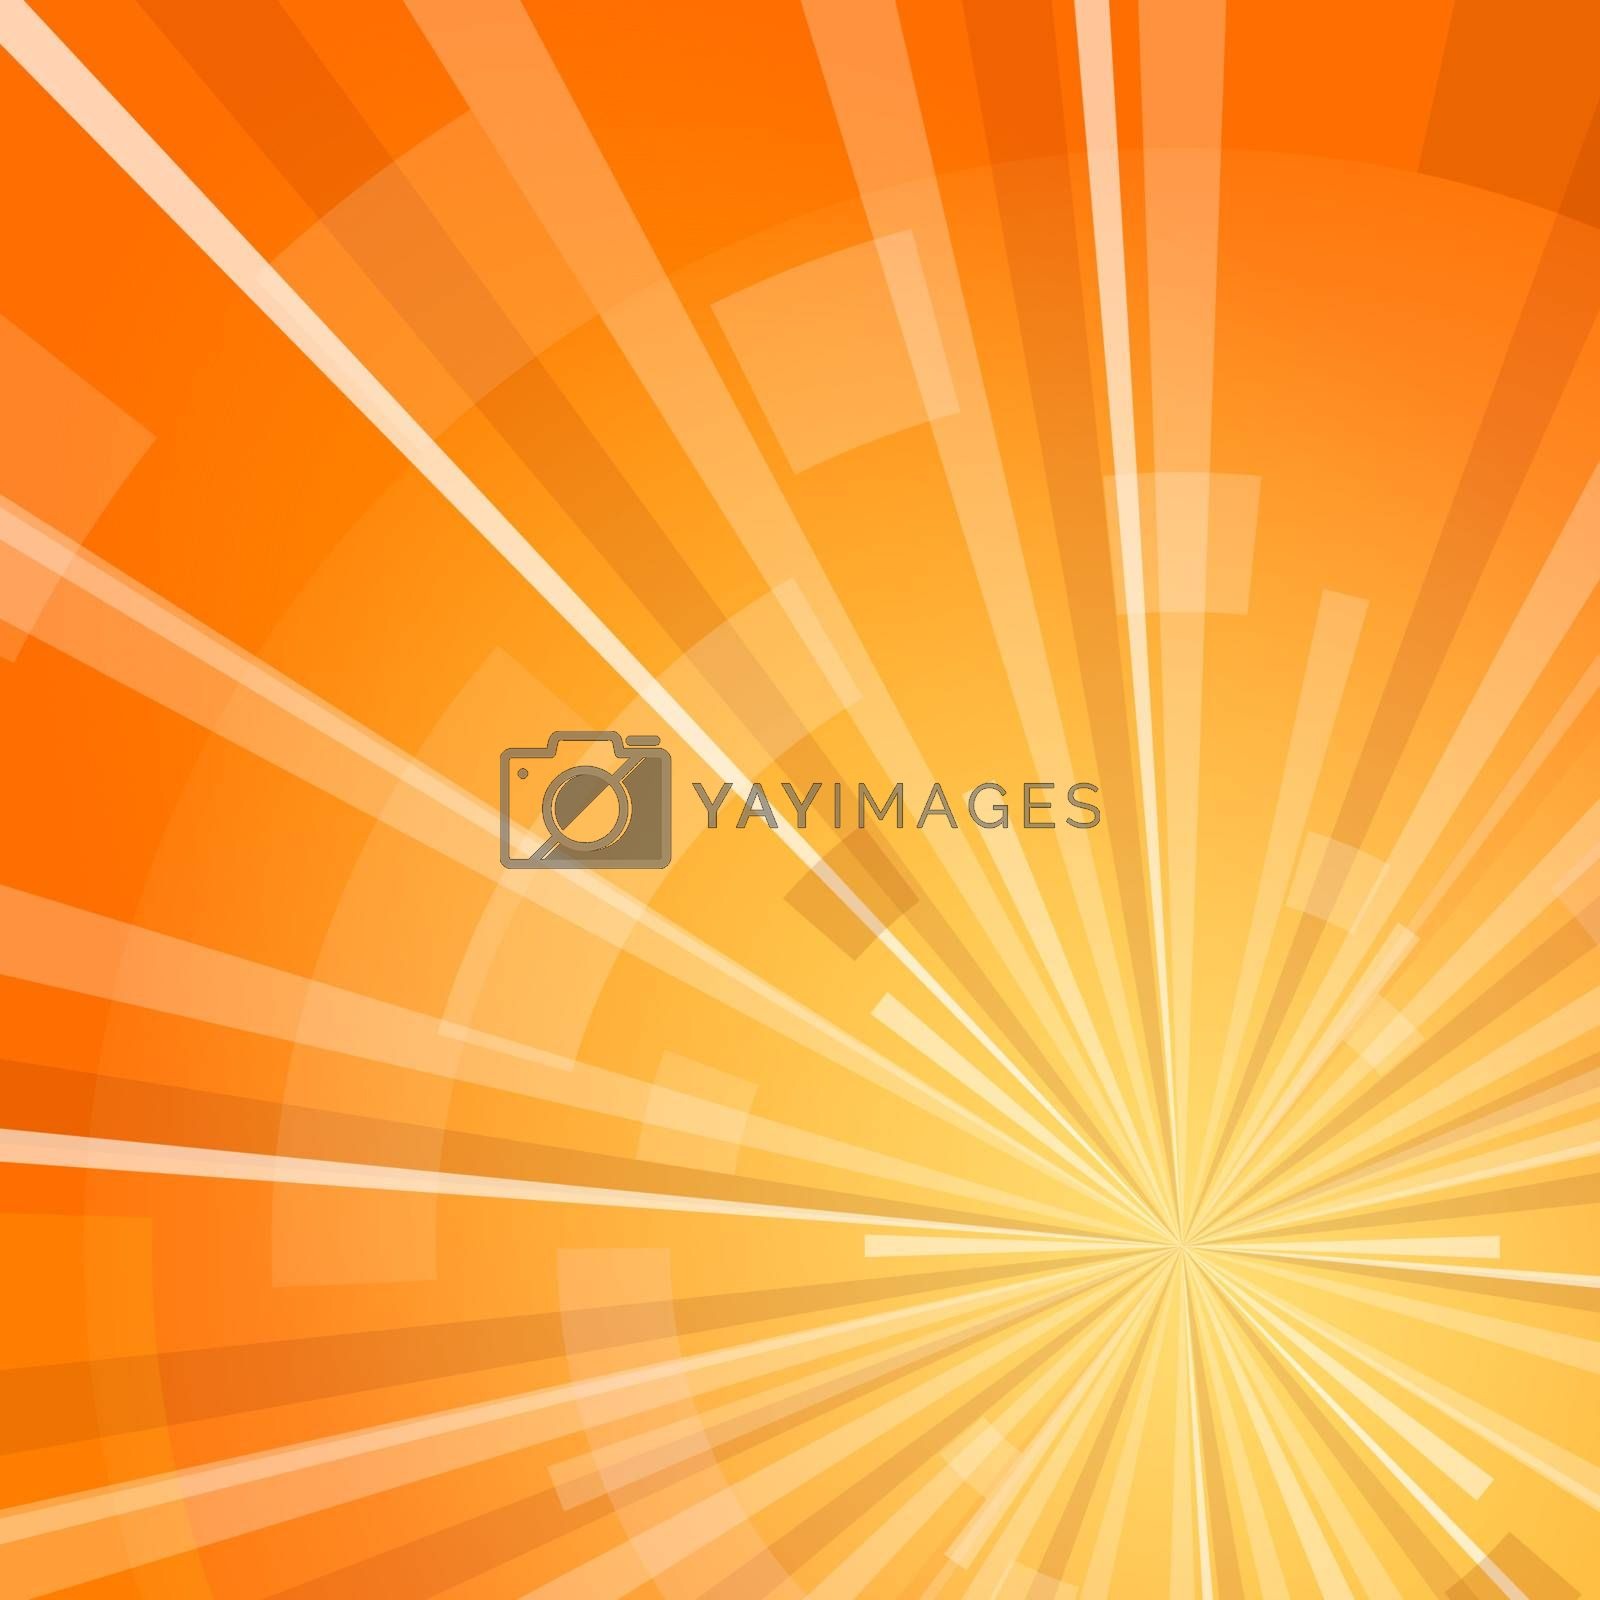 Yellow and Orange digital shine with transparent particles around